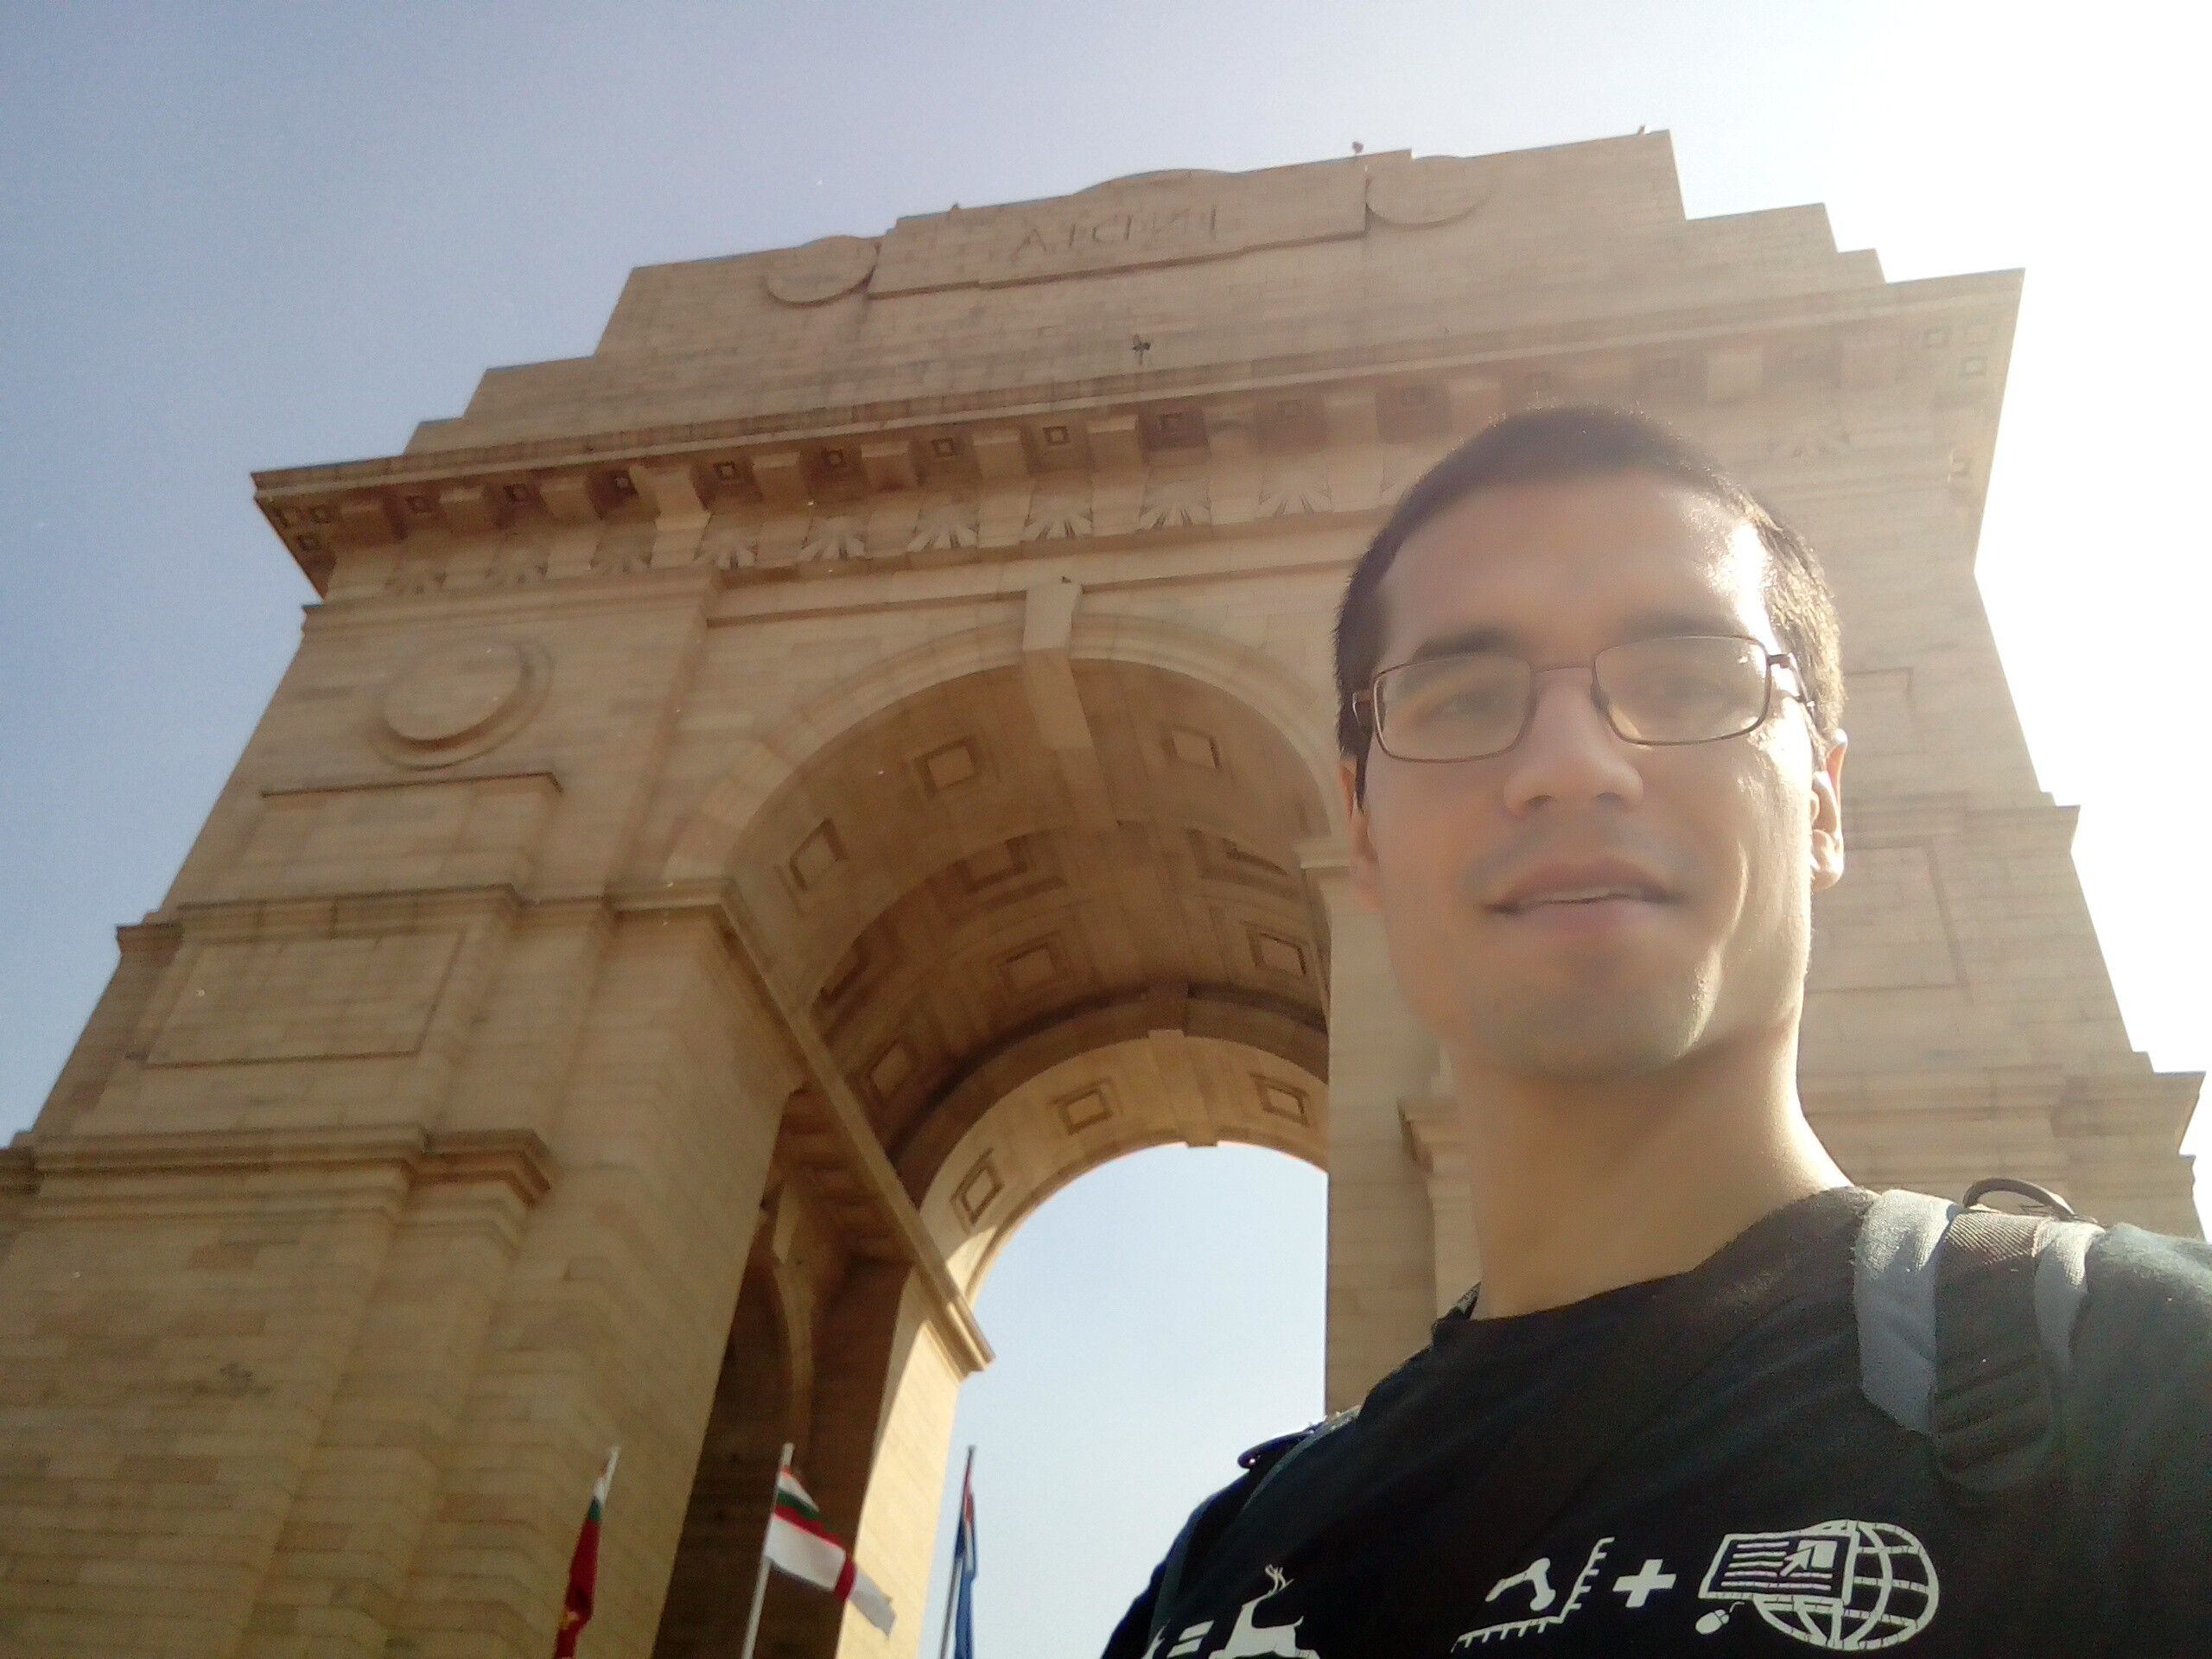 The India Gate, New Delhi